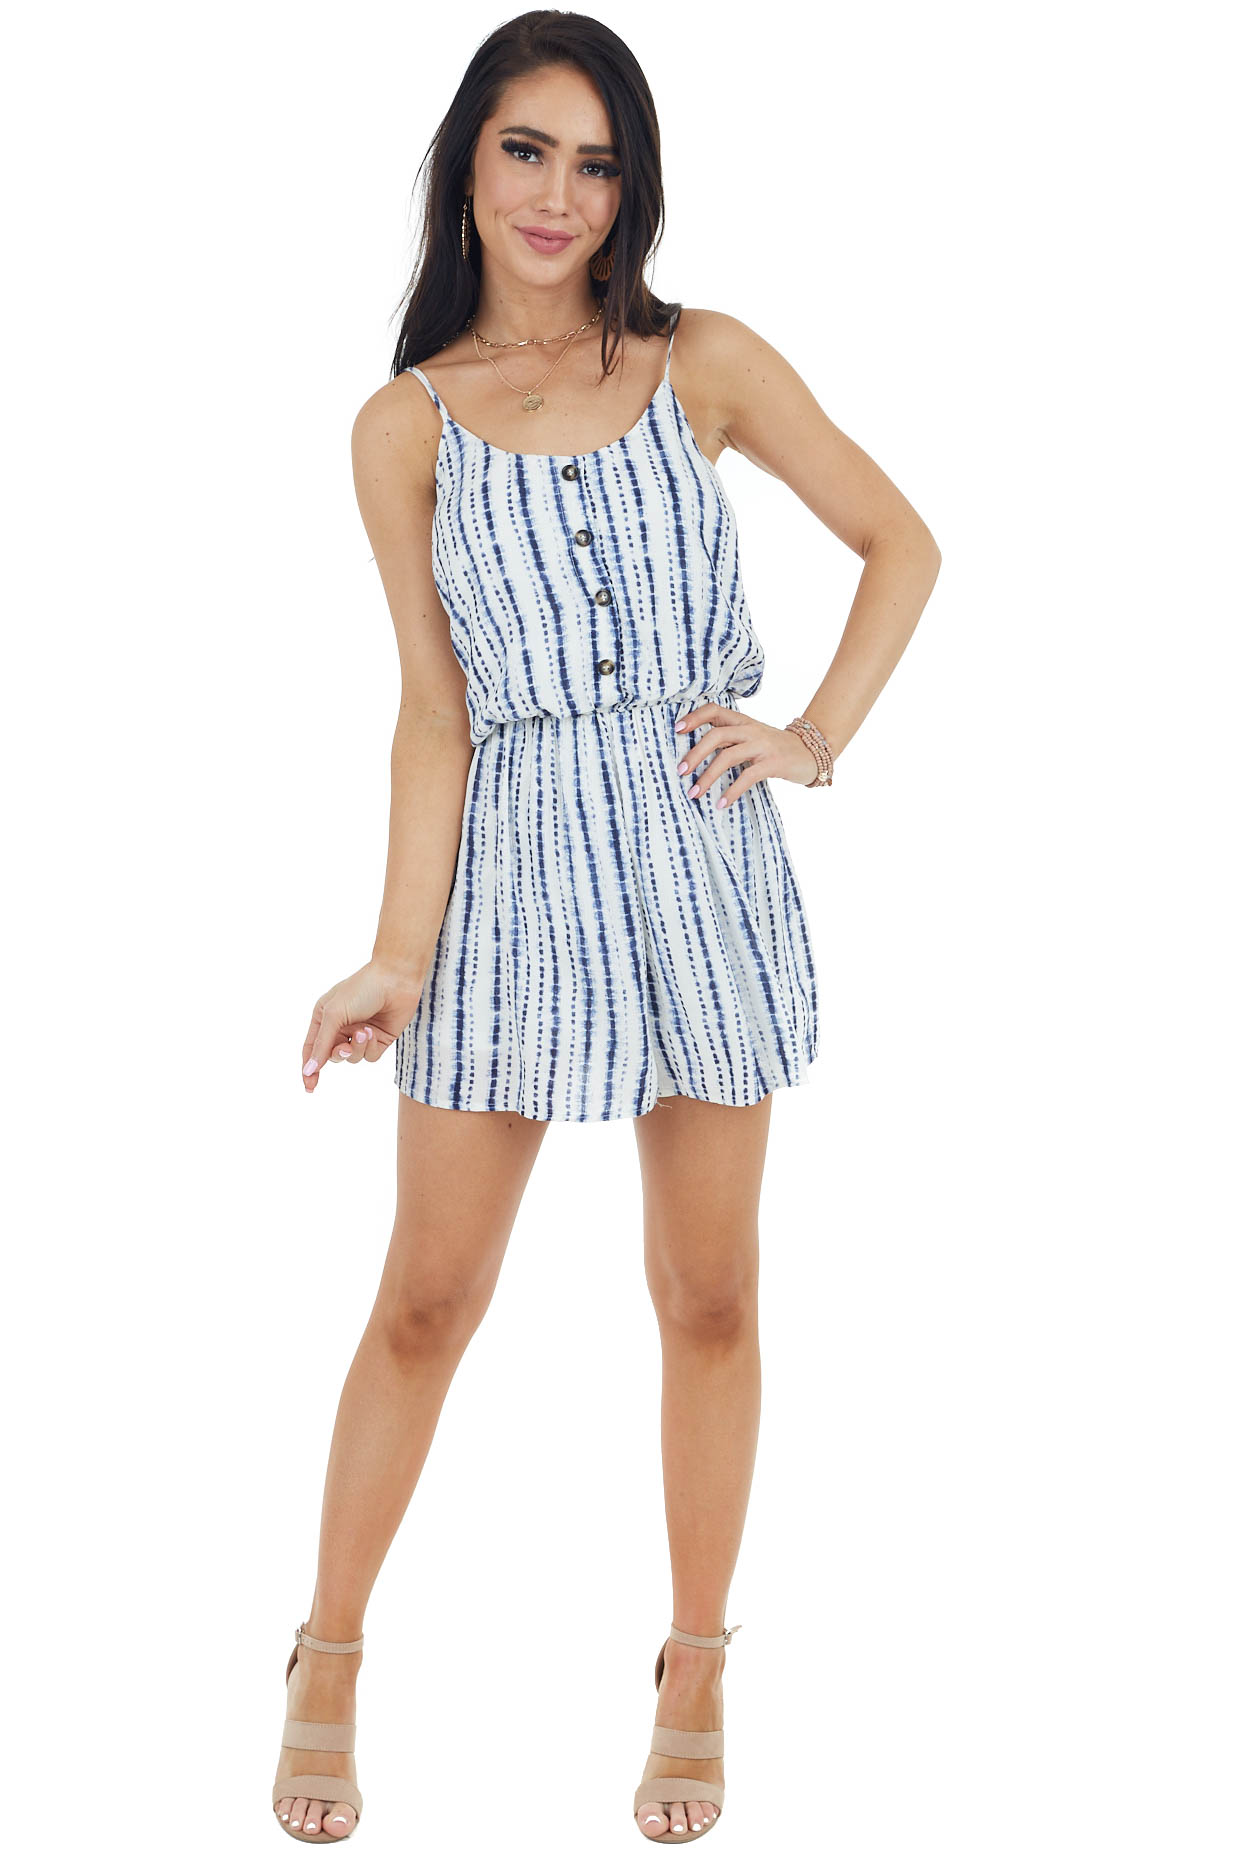 Navy and Ivory Tie Dye Sleeveless Romper with Buttons